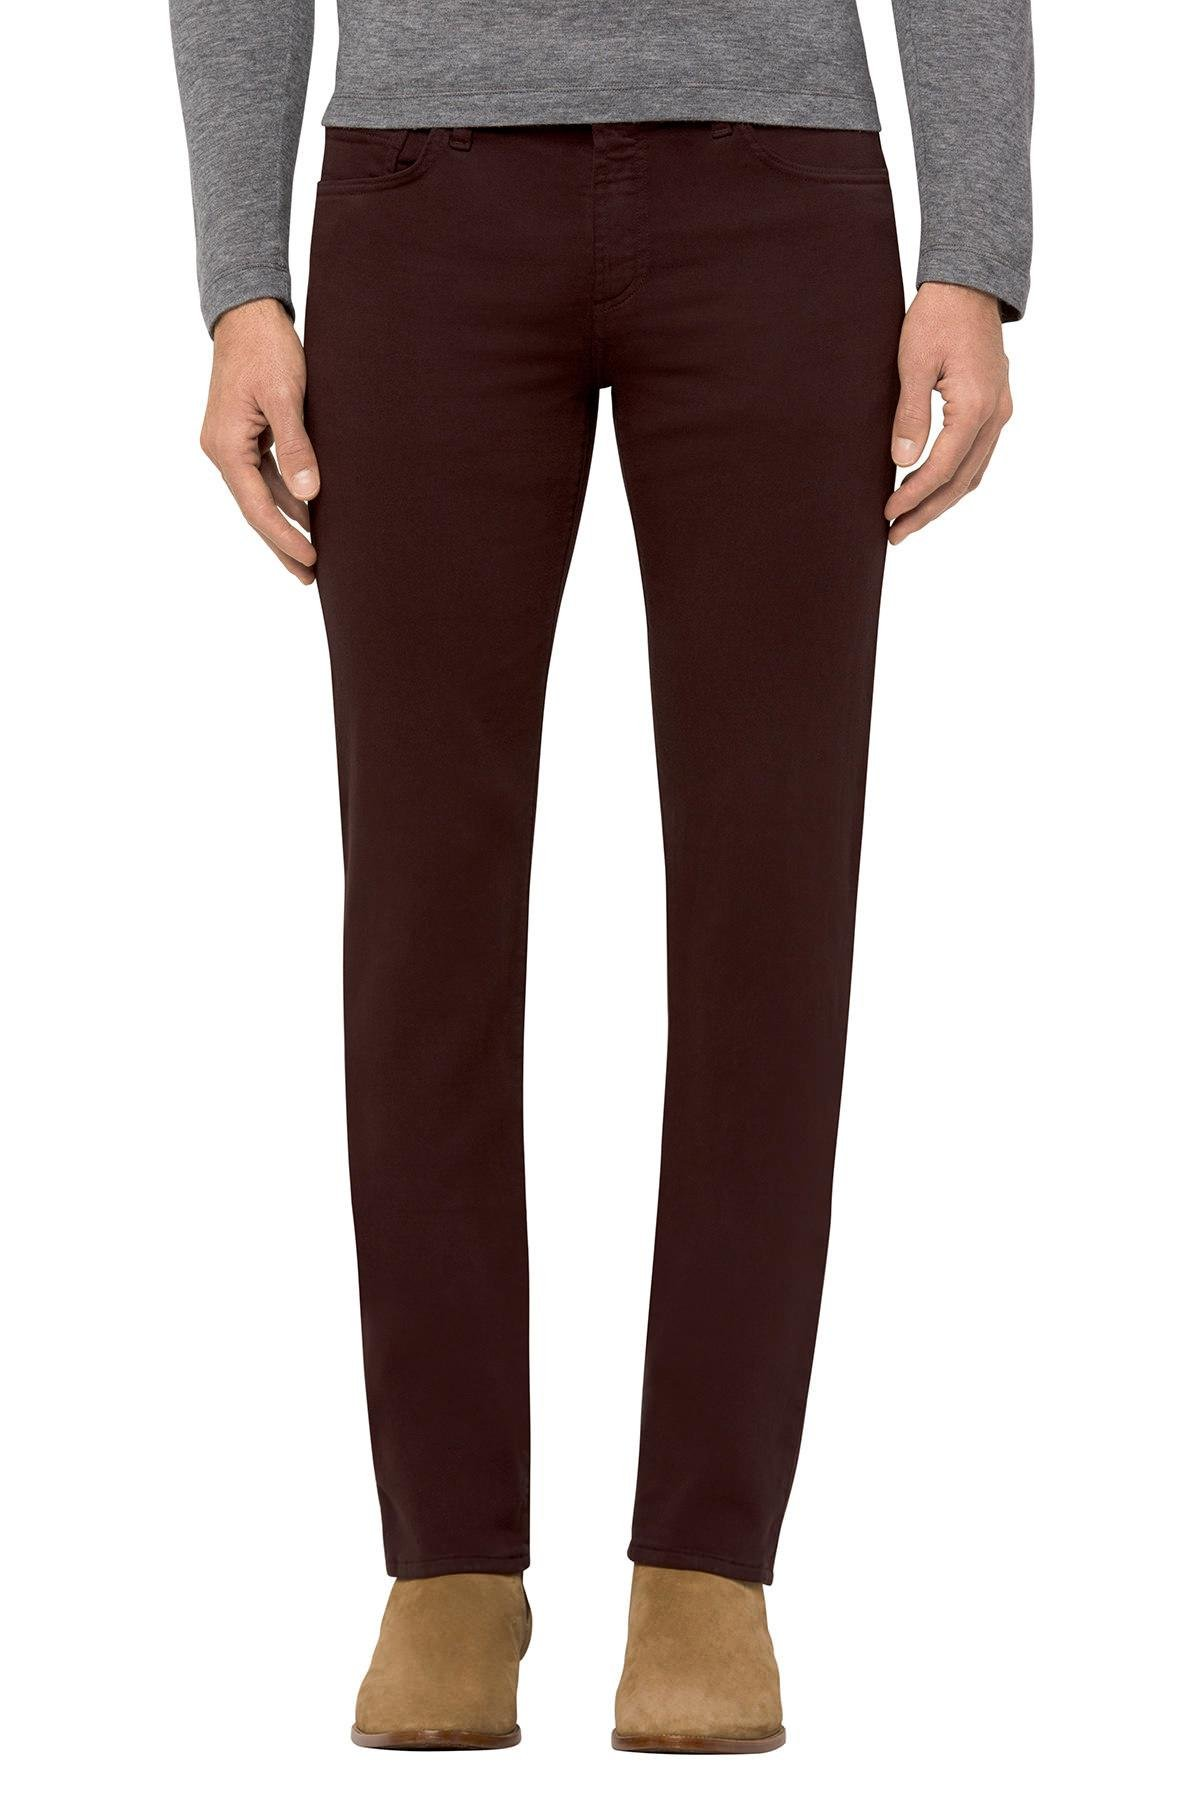 J Brand Kane Straight Fit In Keckley Coquina for Men